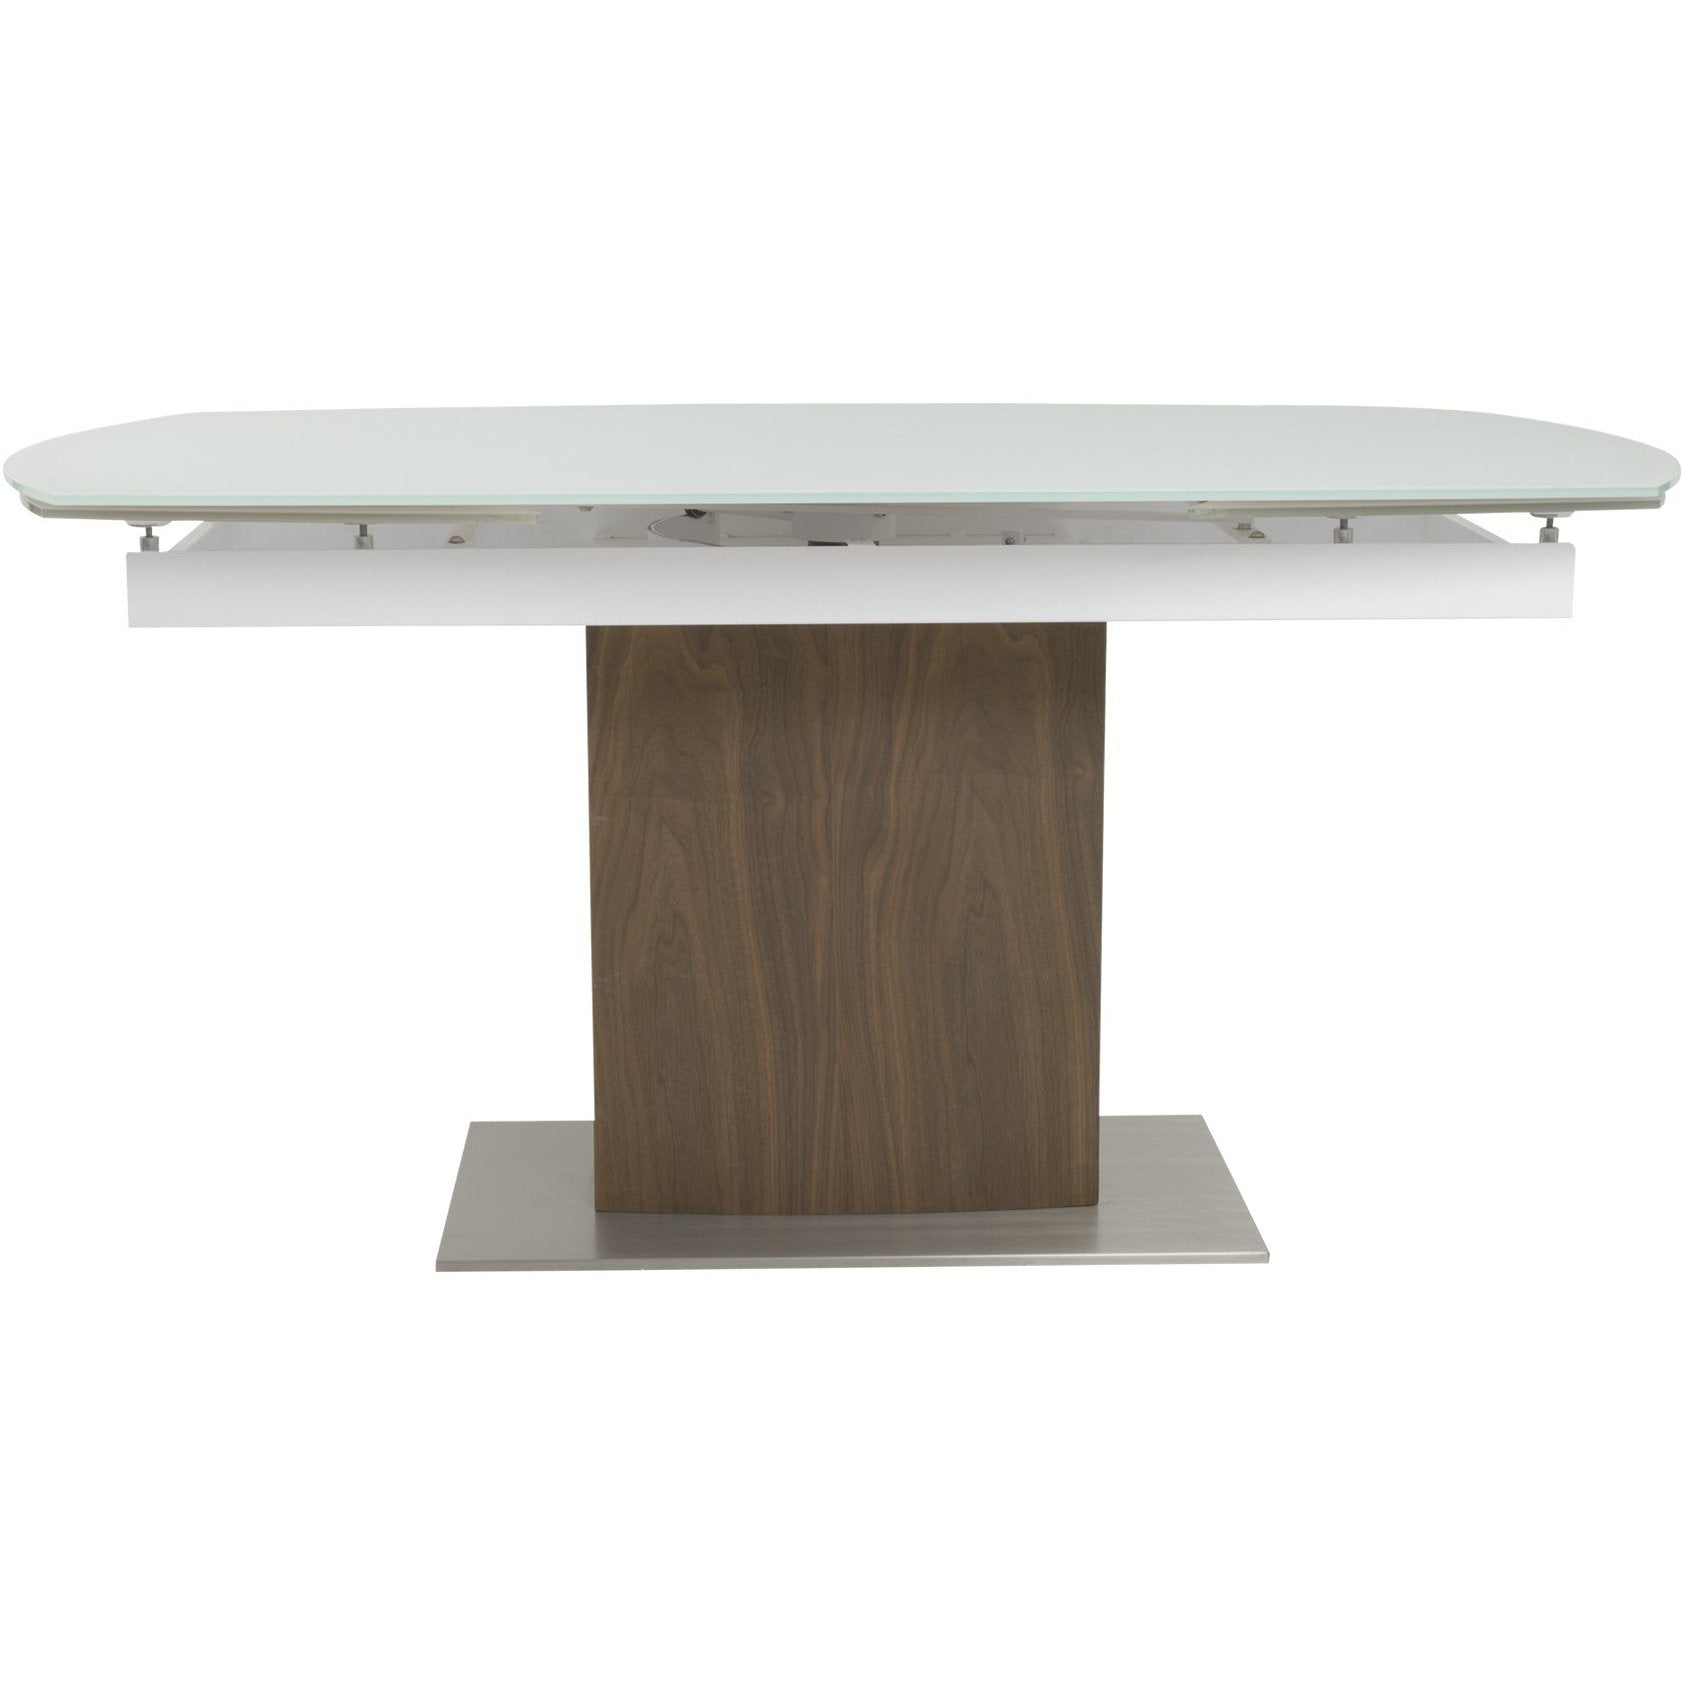 AYANA 95-INCH EXTENSION DINING TABLE - Fast Ship Furniture